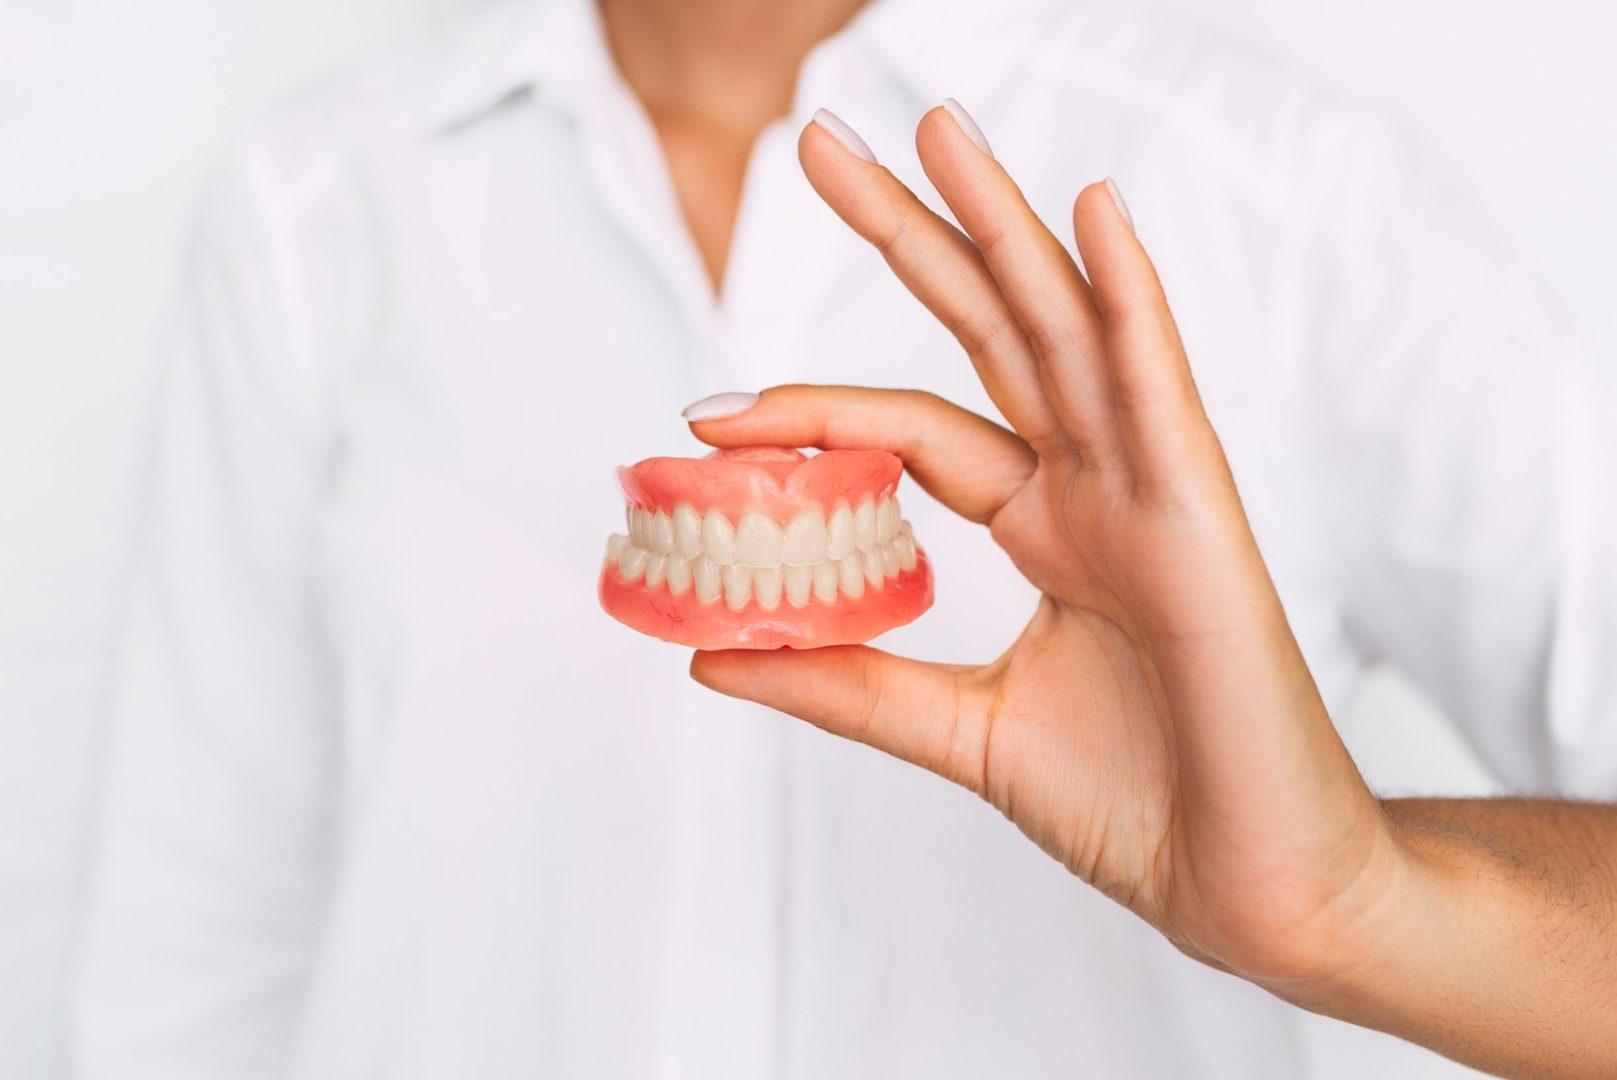 Top reasons people select dentures for their oral health